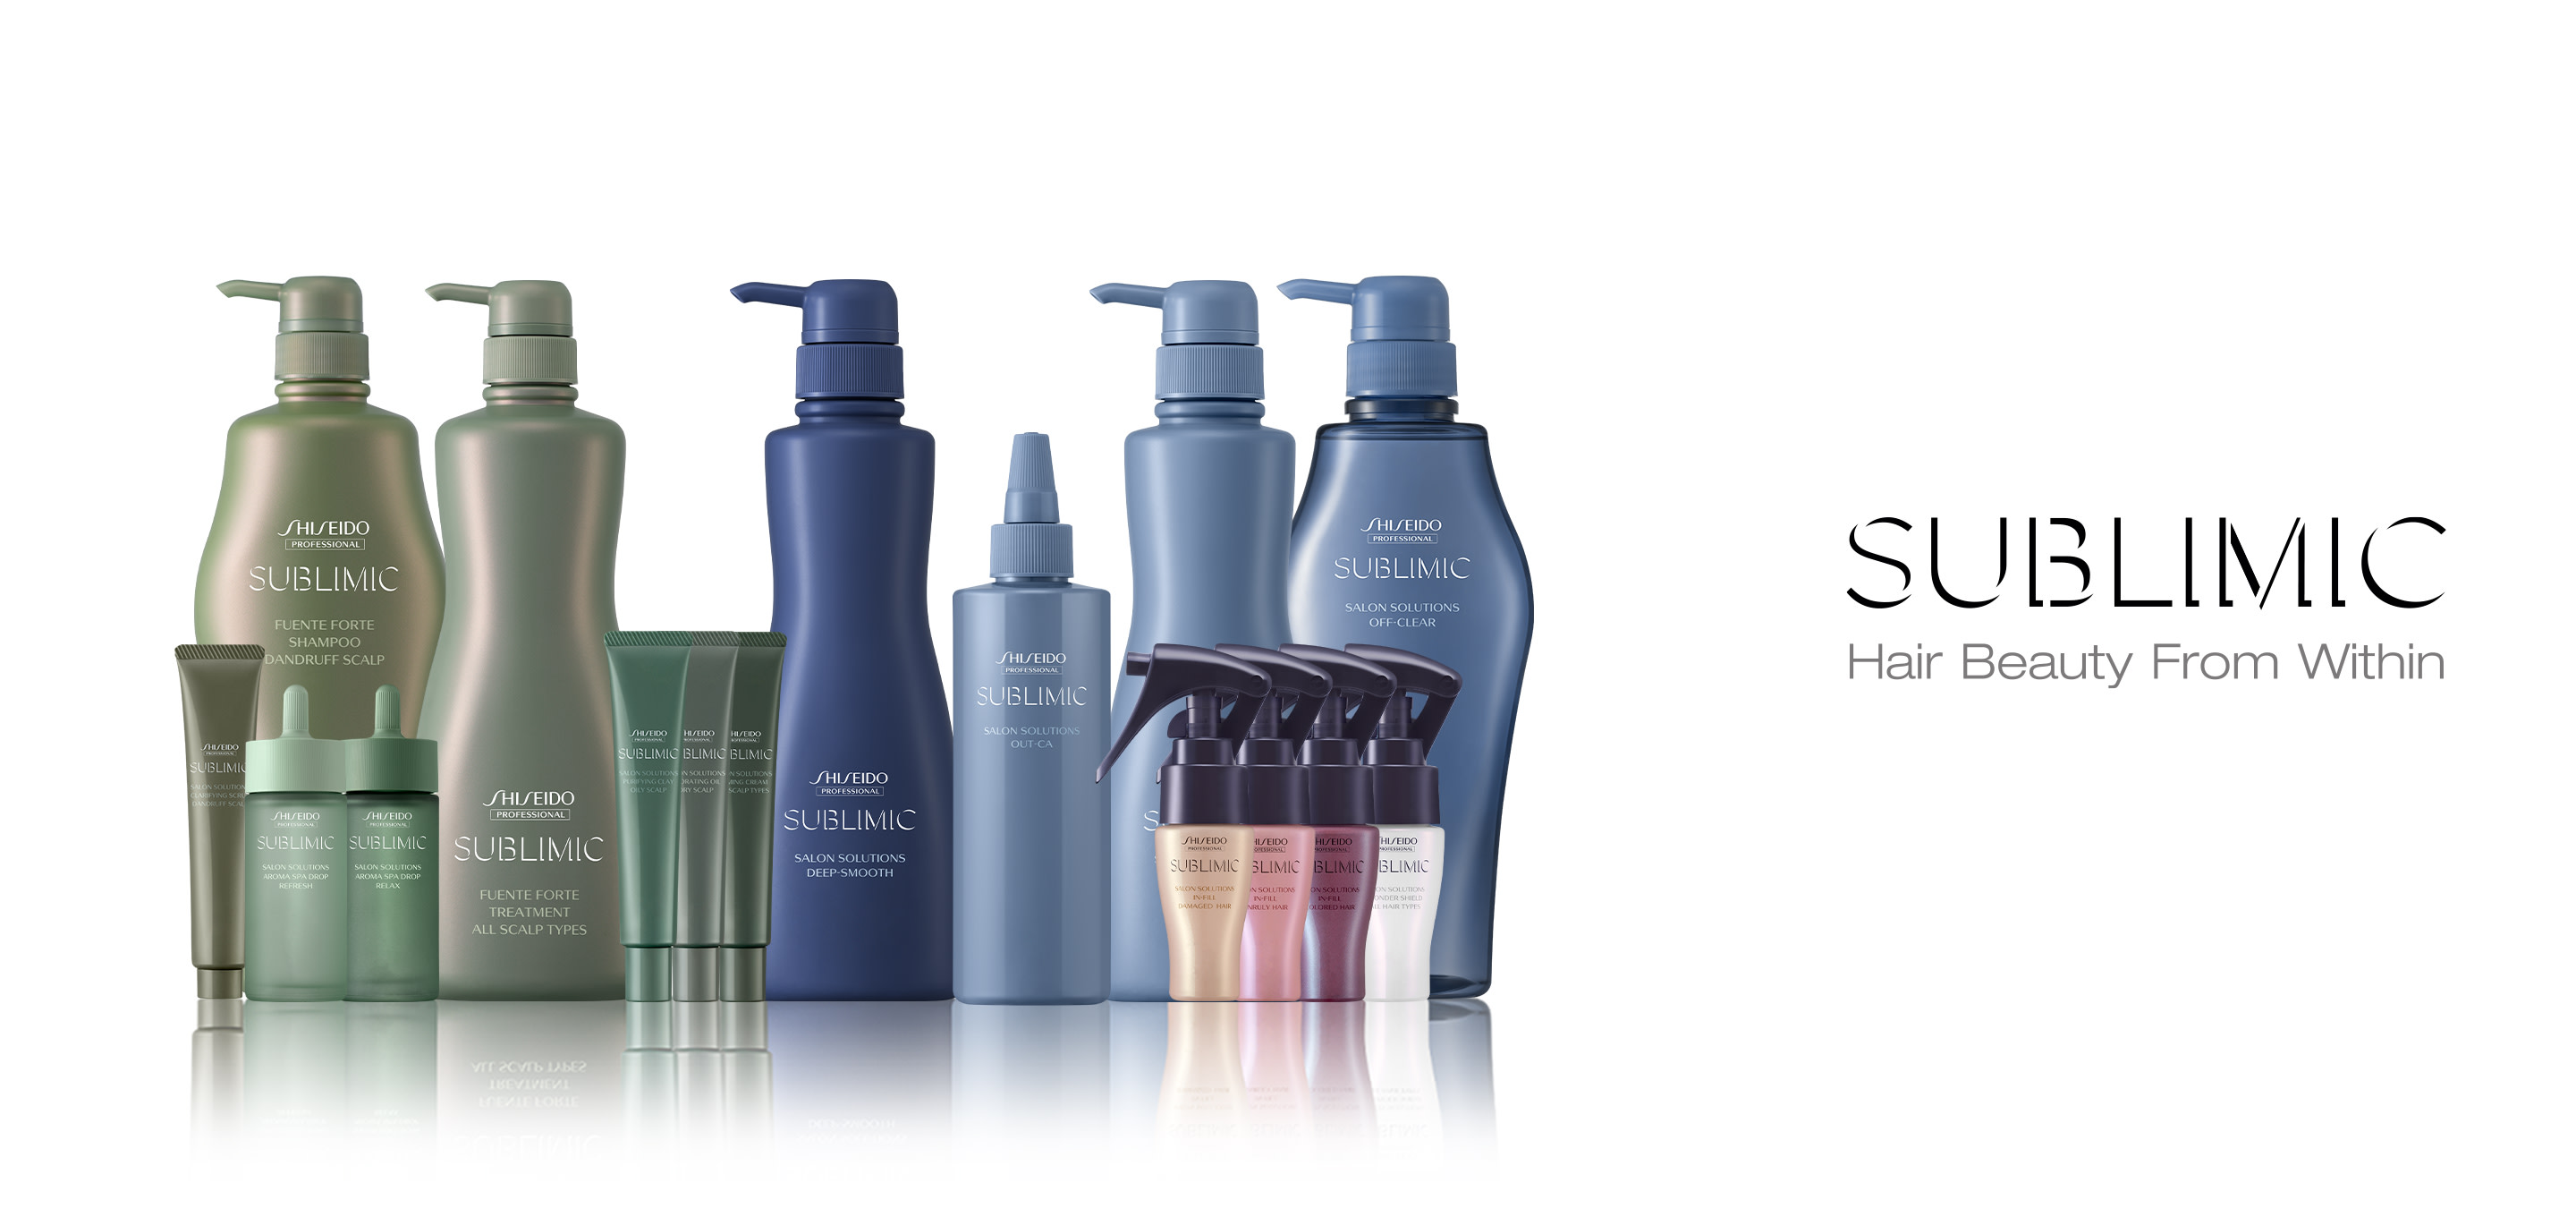 Shiseido Professional's Sublimic Products